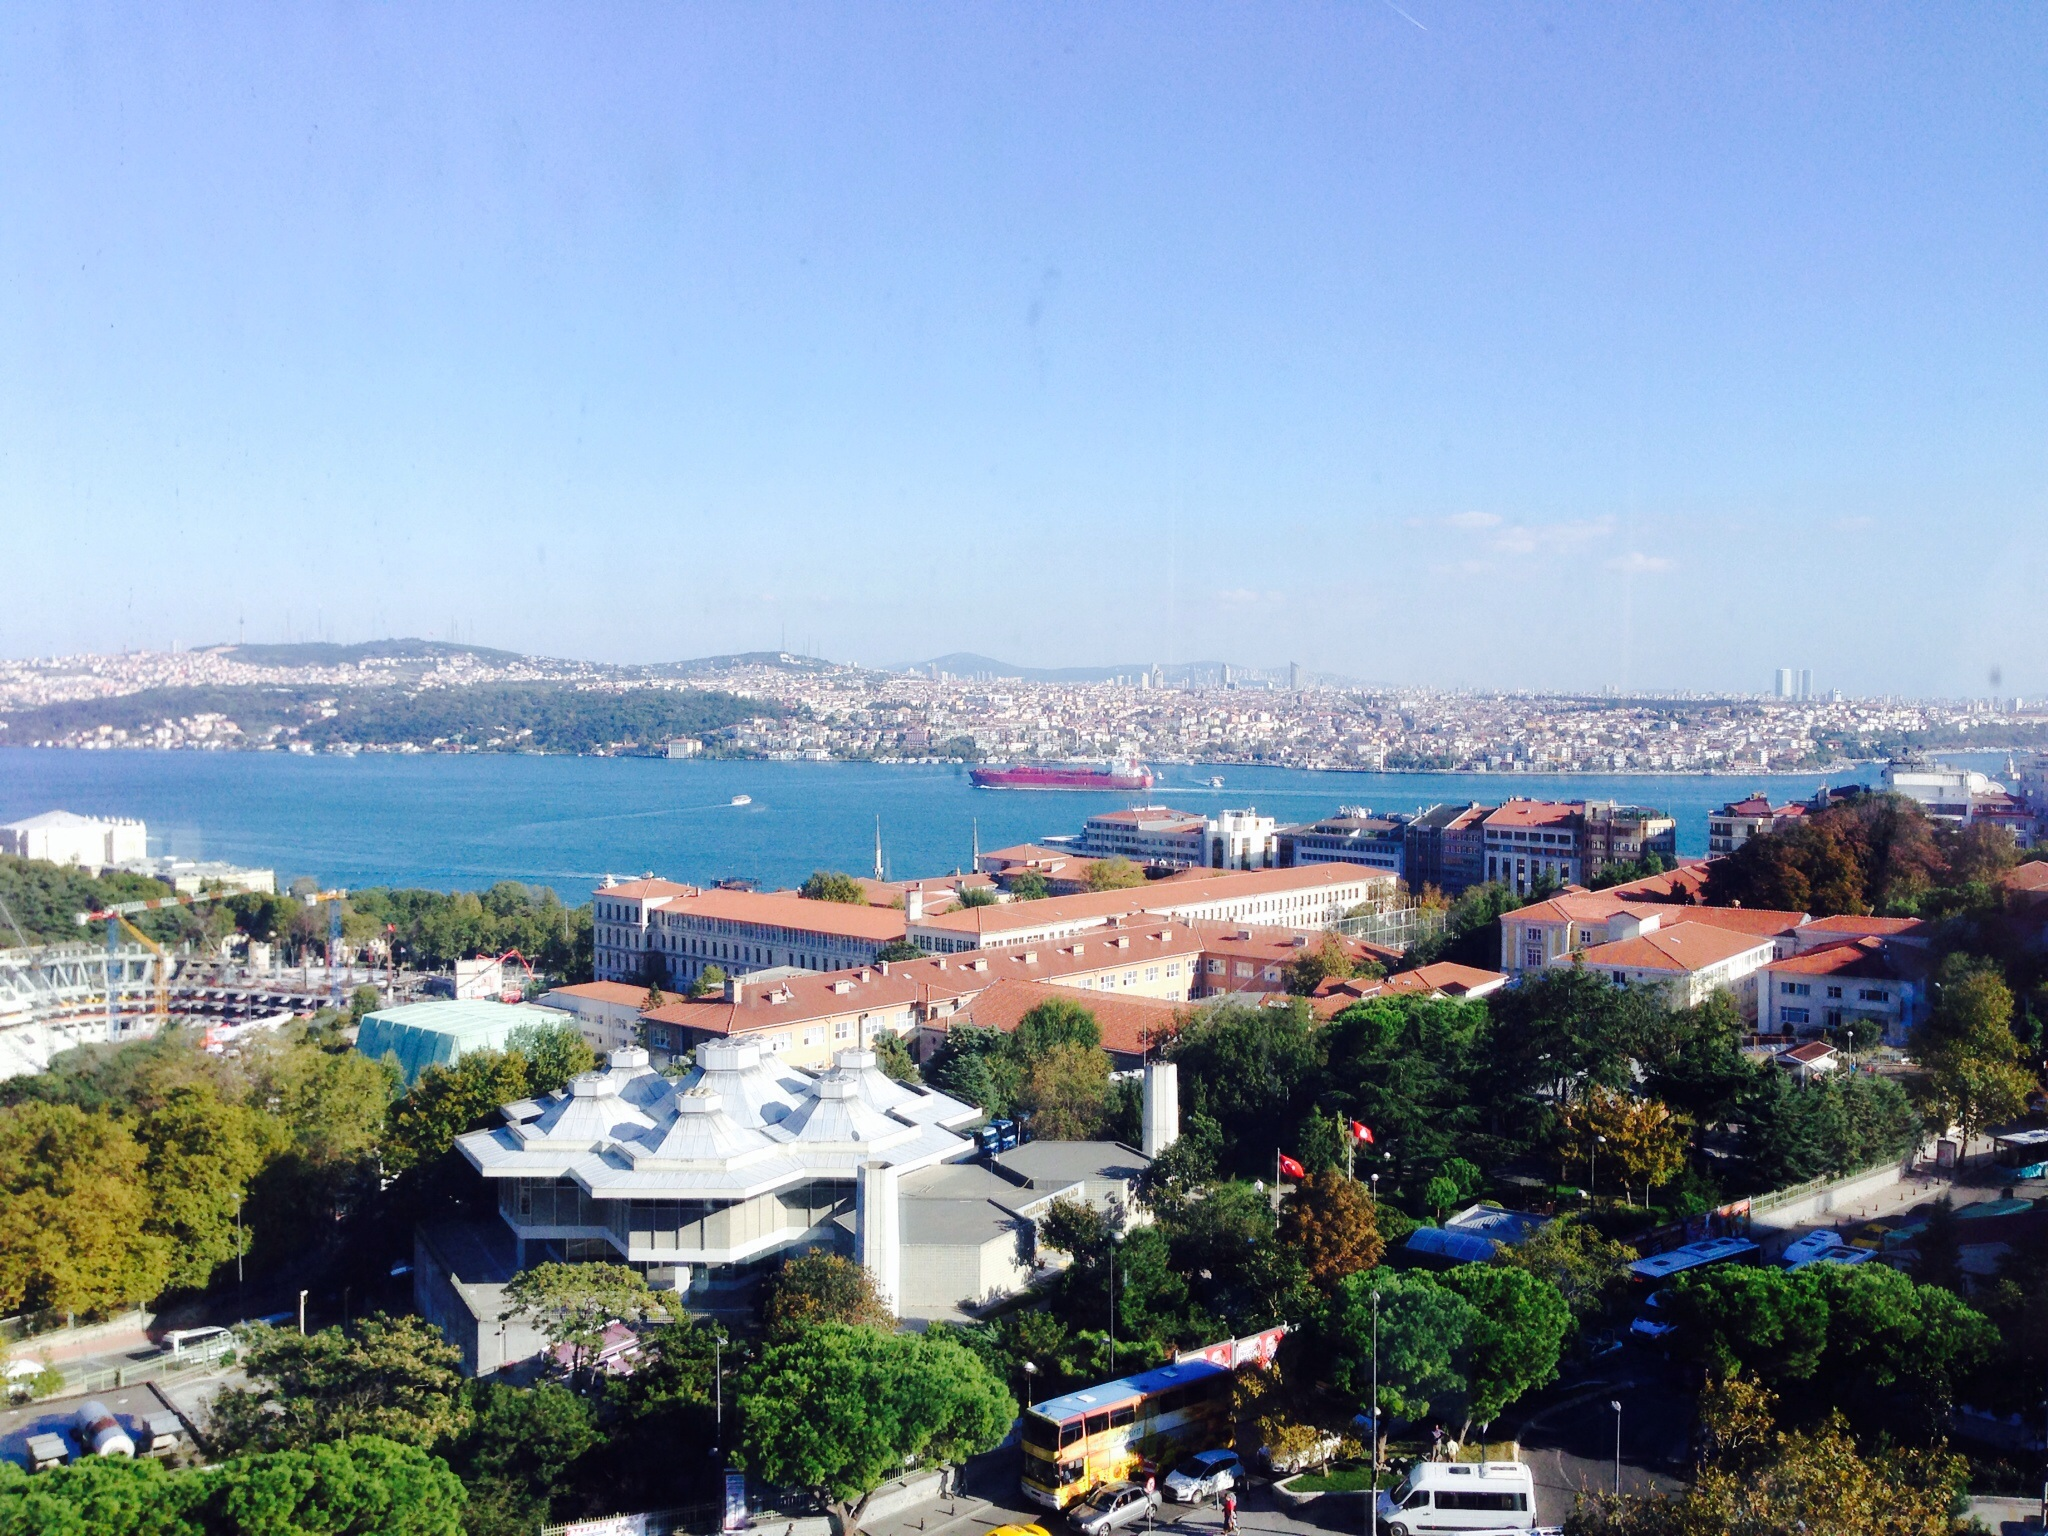 A view of the Asian side of Istanbul with ferries and shipping traffic from our hotel room